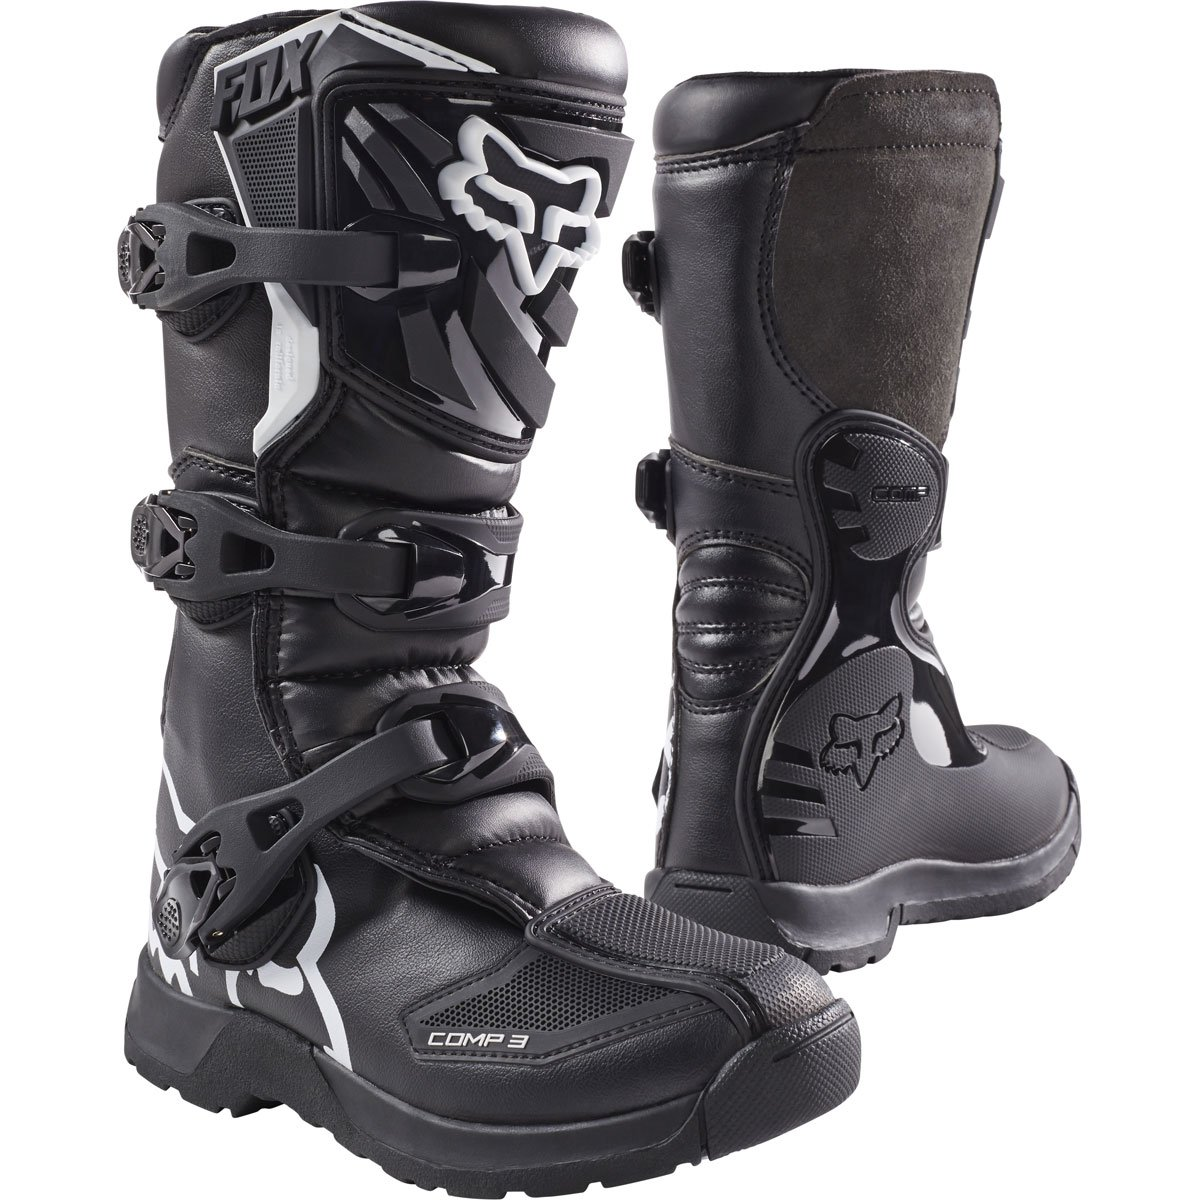 2018 Fox Racing Youth Comp 3 Boots-Y1